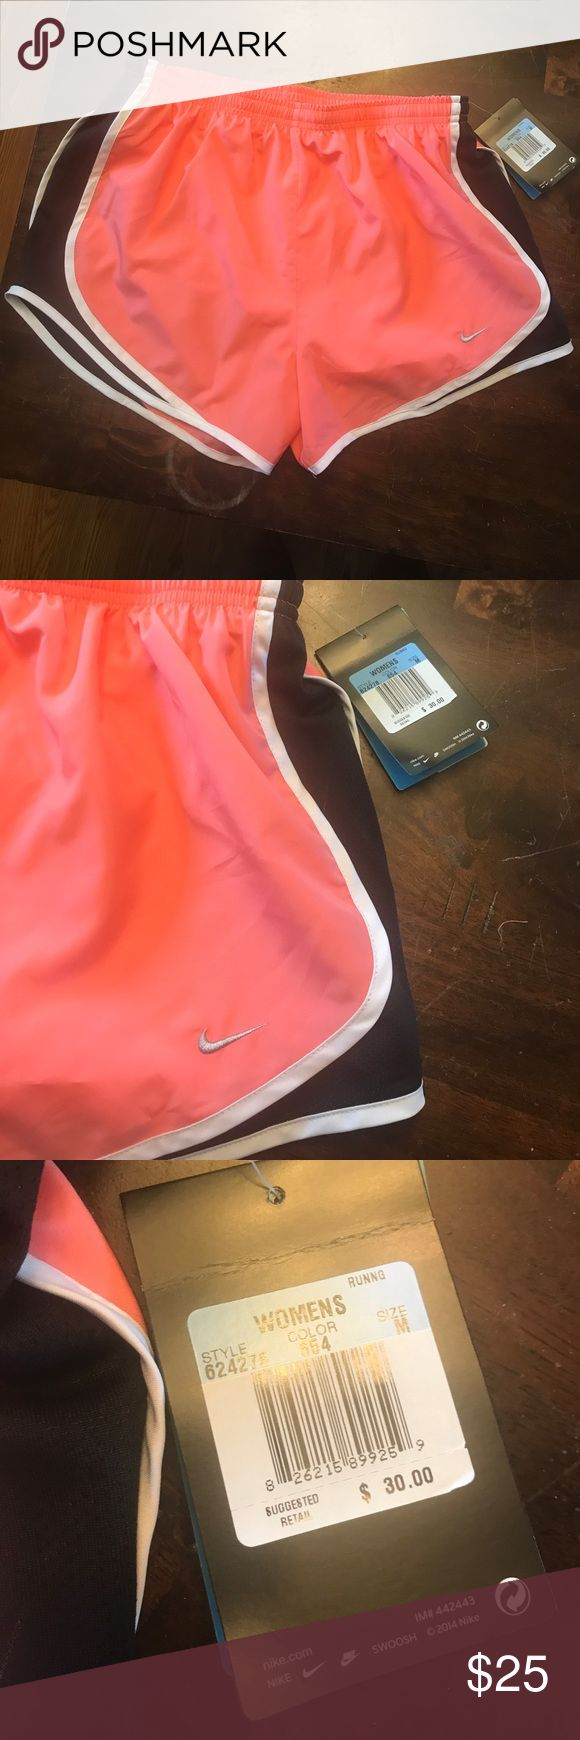 Women's Nike shorts New with tags Nike shorts! Size M. Coral color and black Nike Shorts